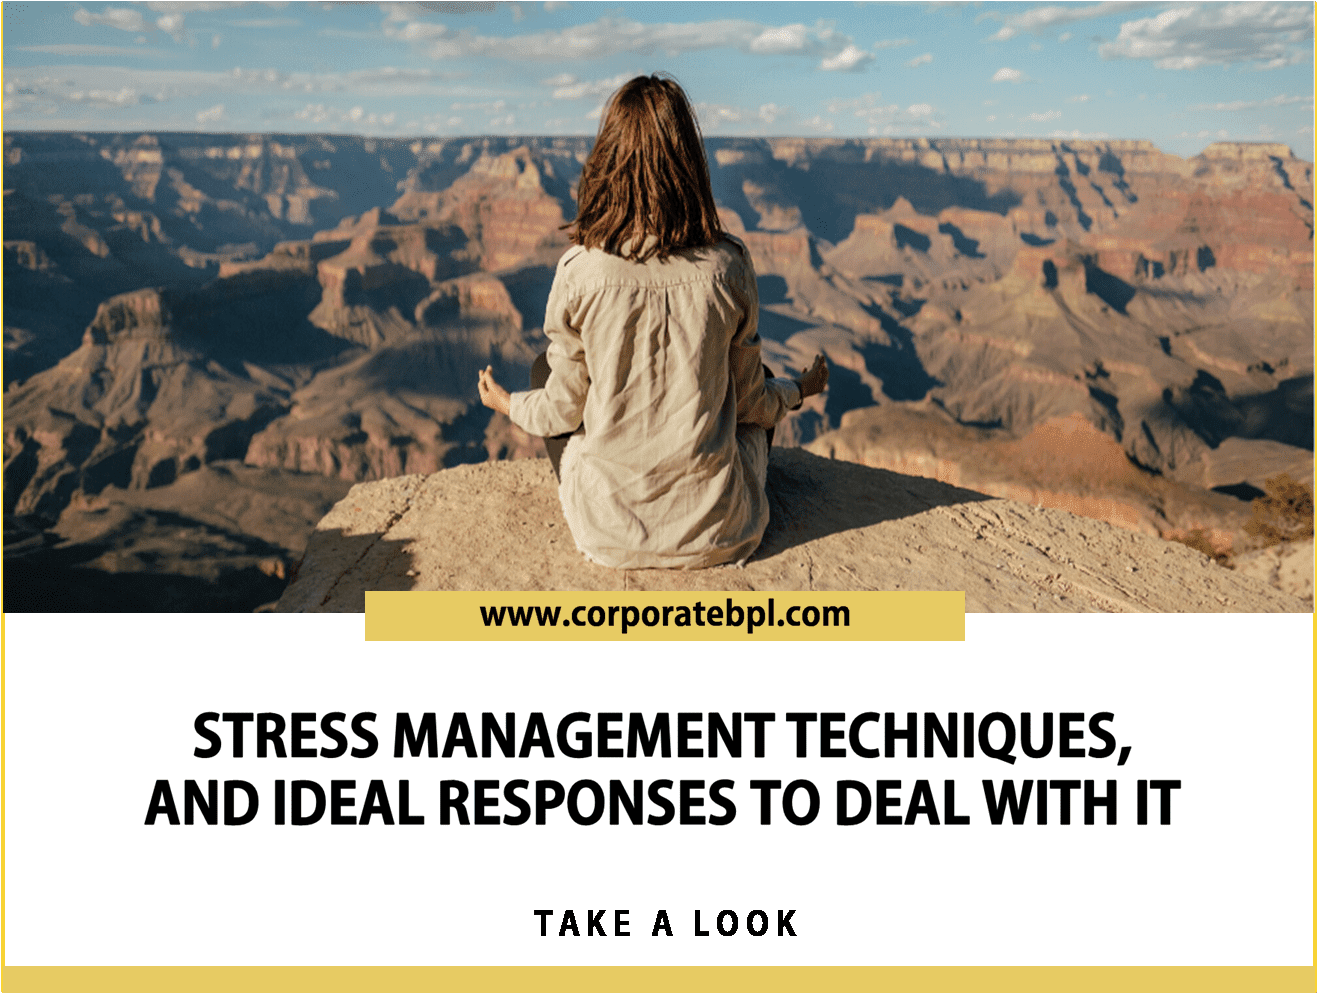 Stress Management Techniques And Ideal Responses To Deal